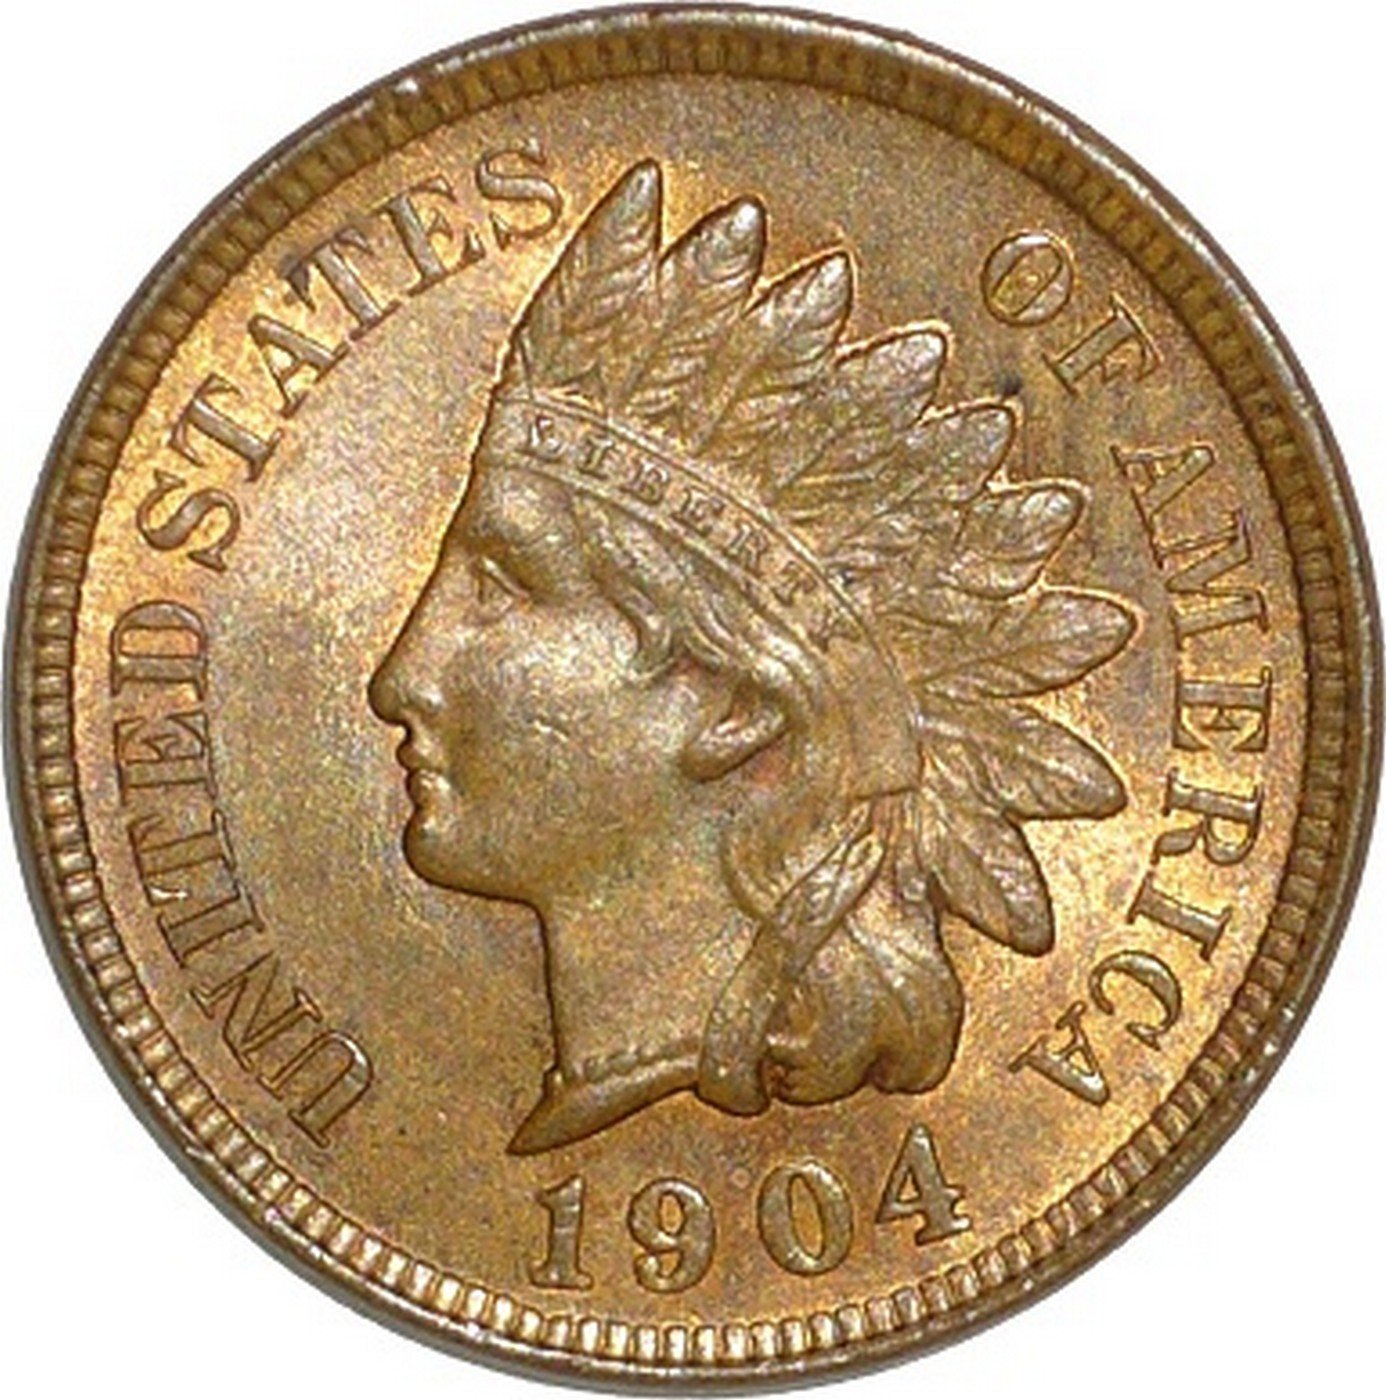 1904 RPD-017 - Indian Head Penny - Photo by David Poliquin